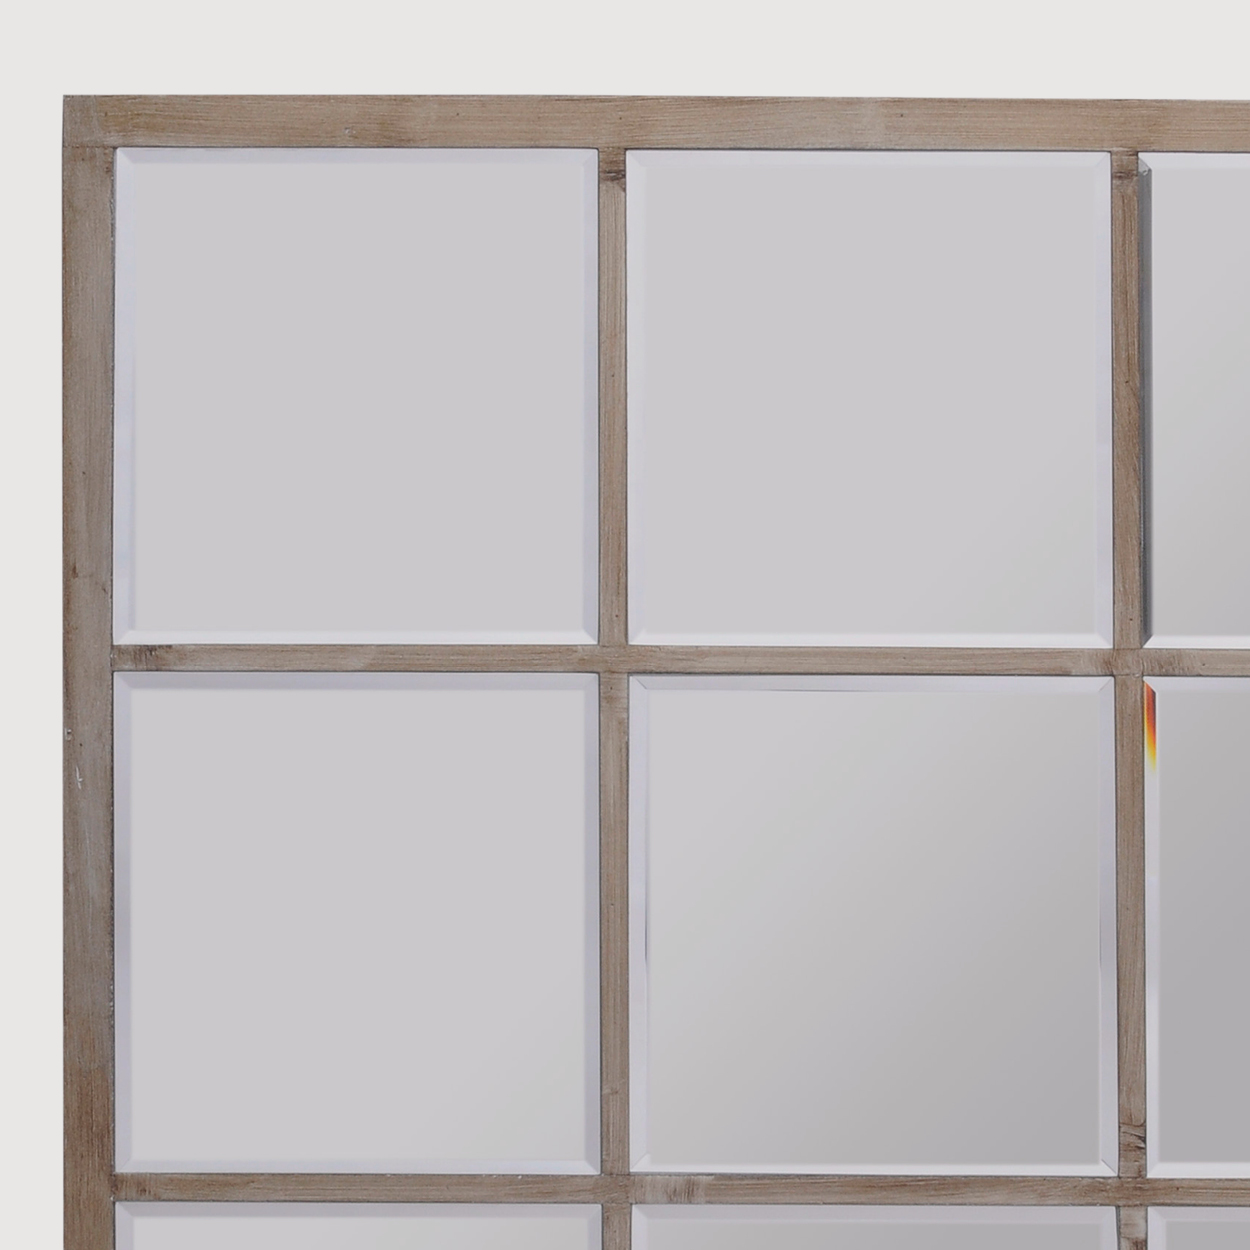 Blakely Square Window Mirror –Small gallery image